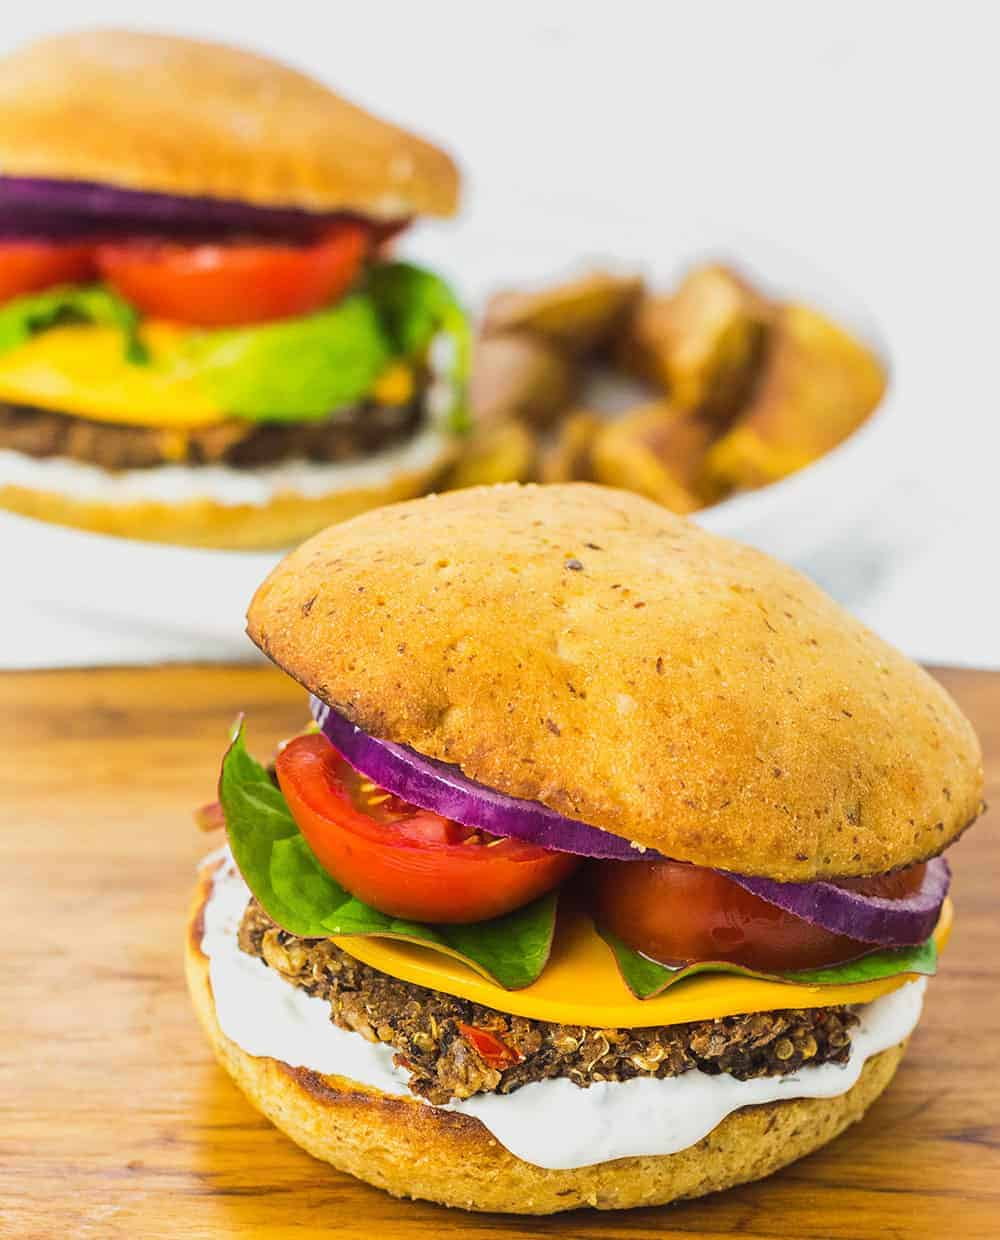 Two Black Bean Quinoa Burgers with lettuce, tomato, onion, and fries